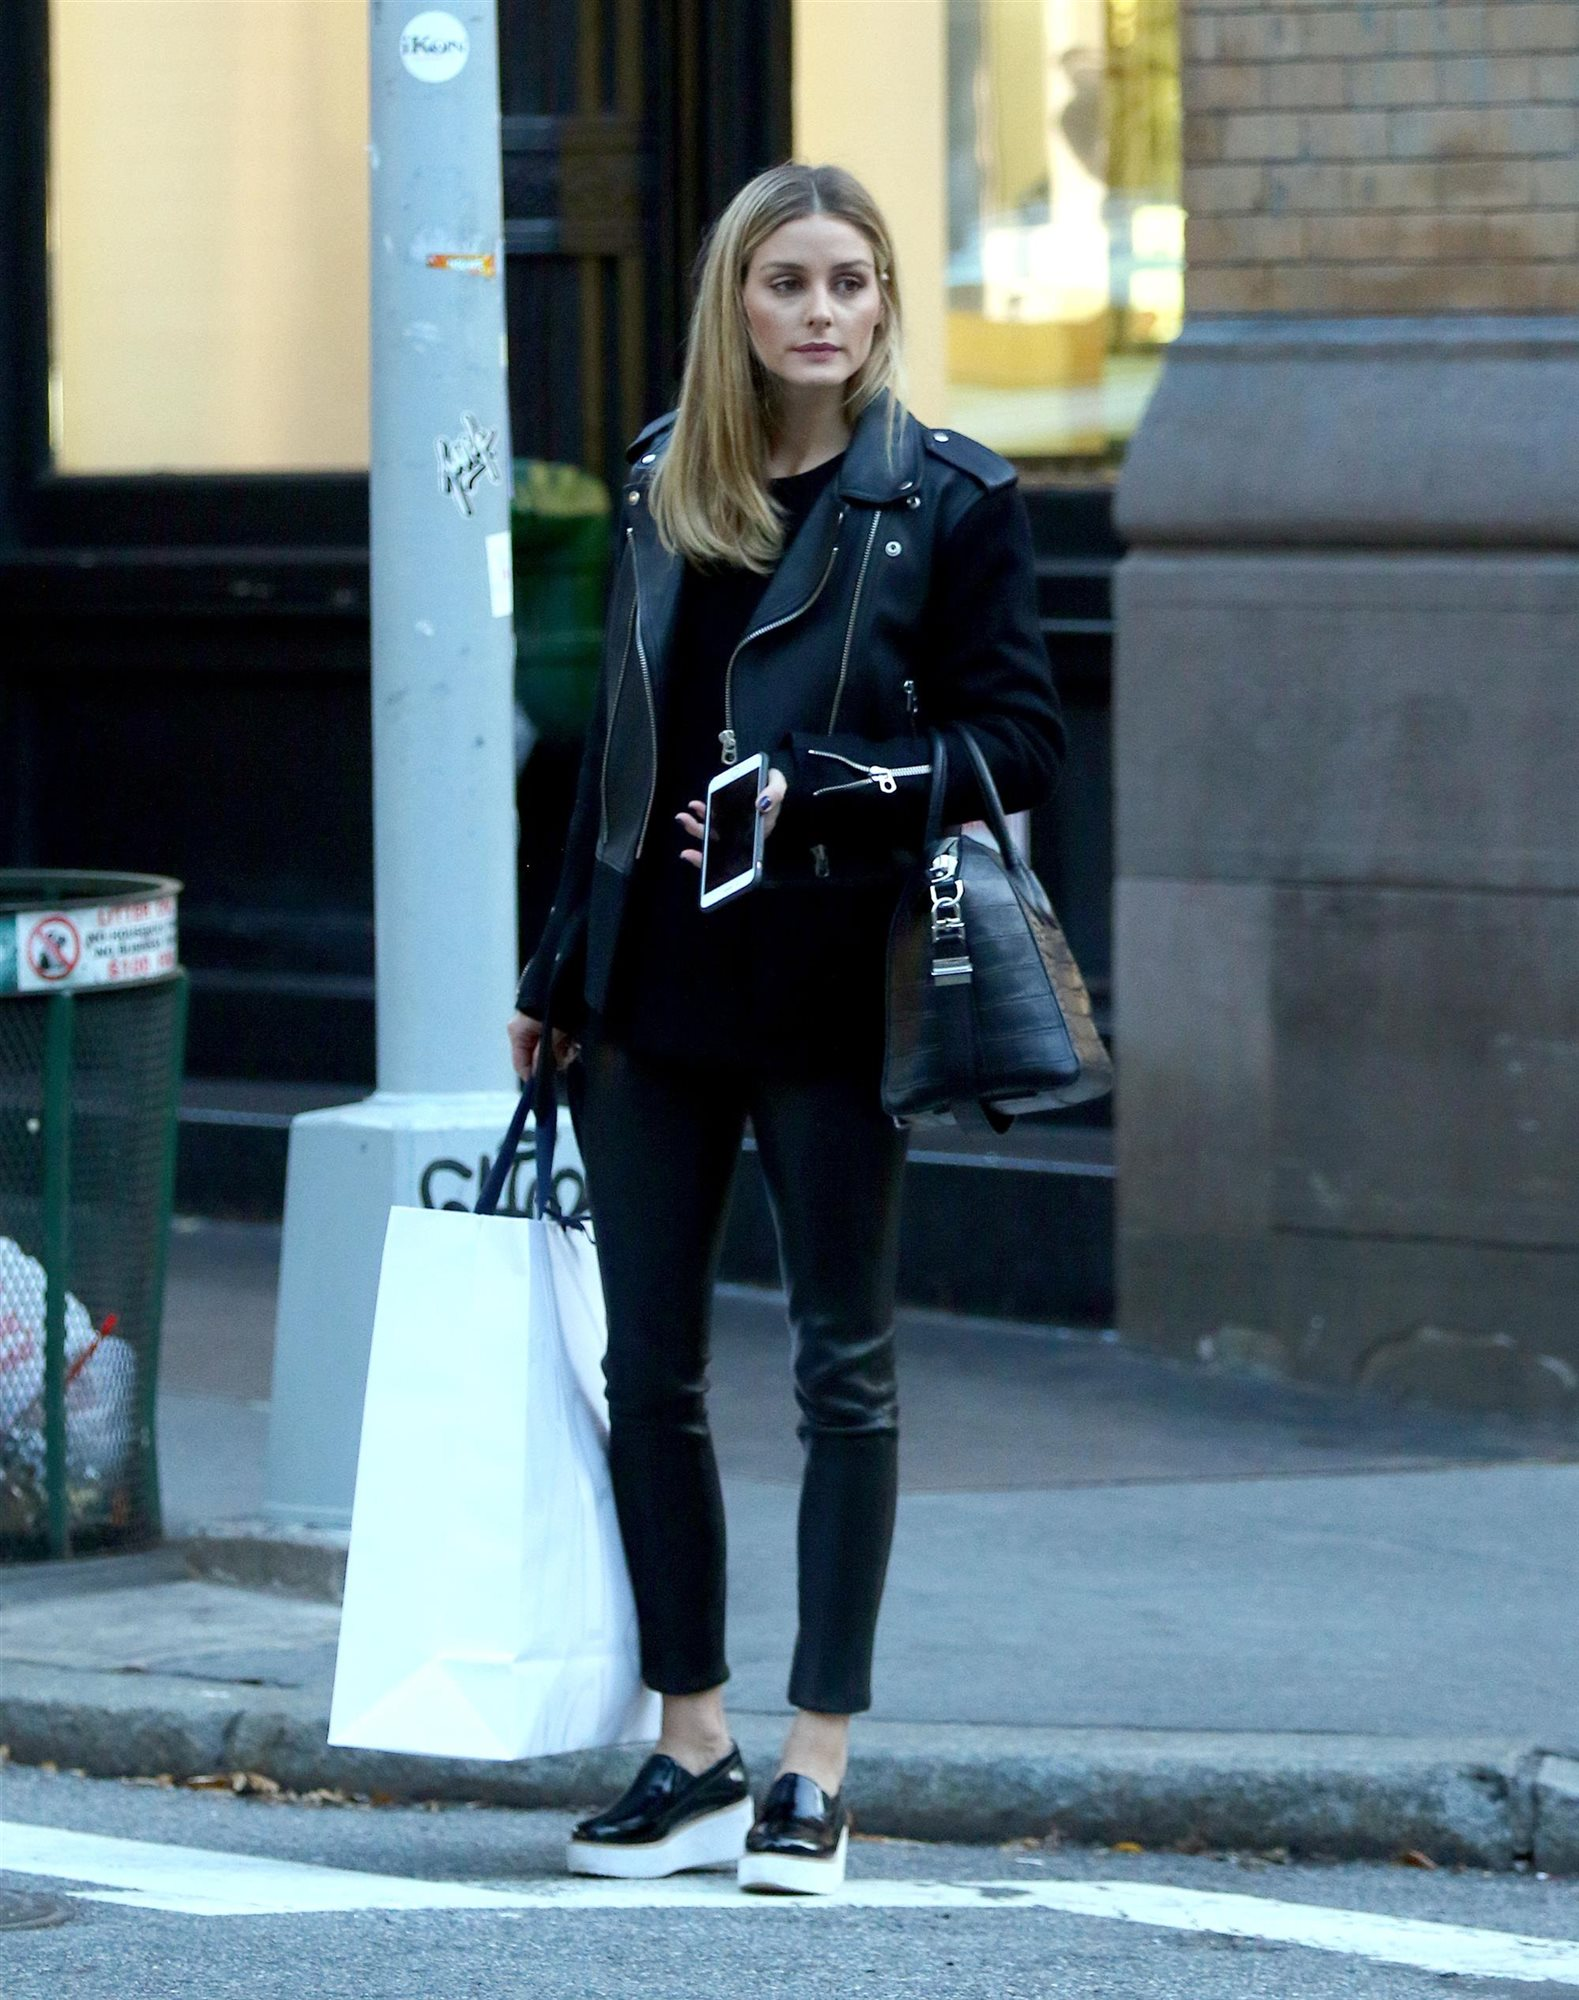 Top 5. Olivia Palermo